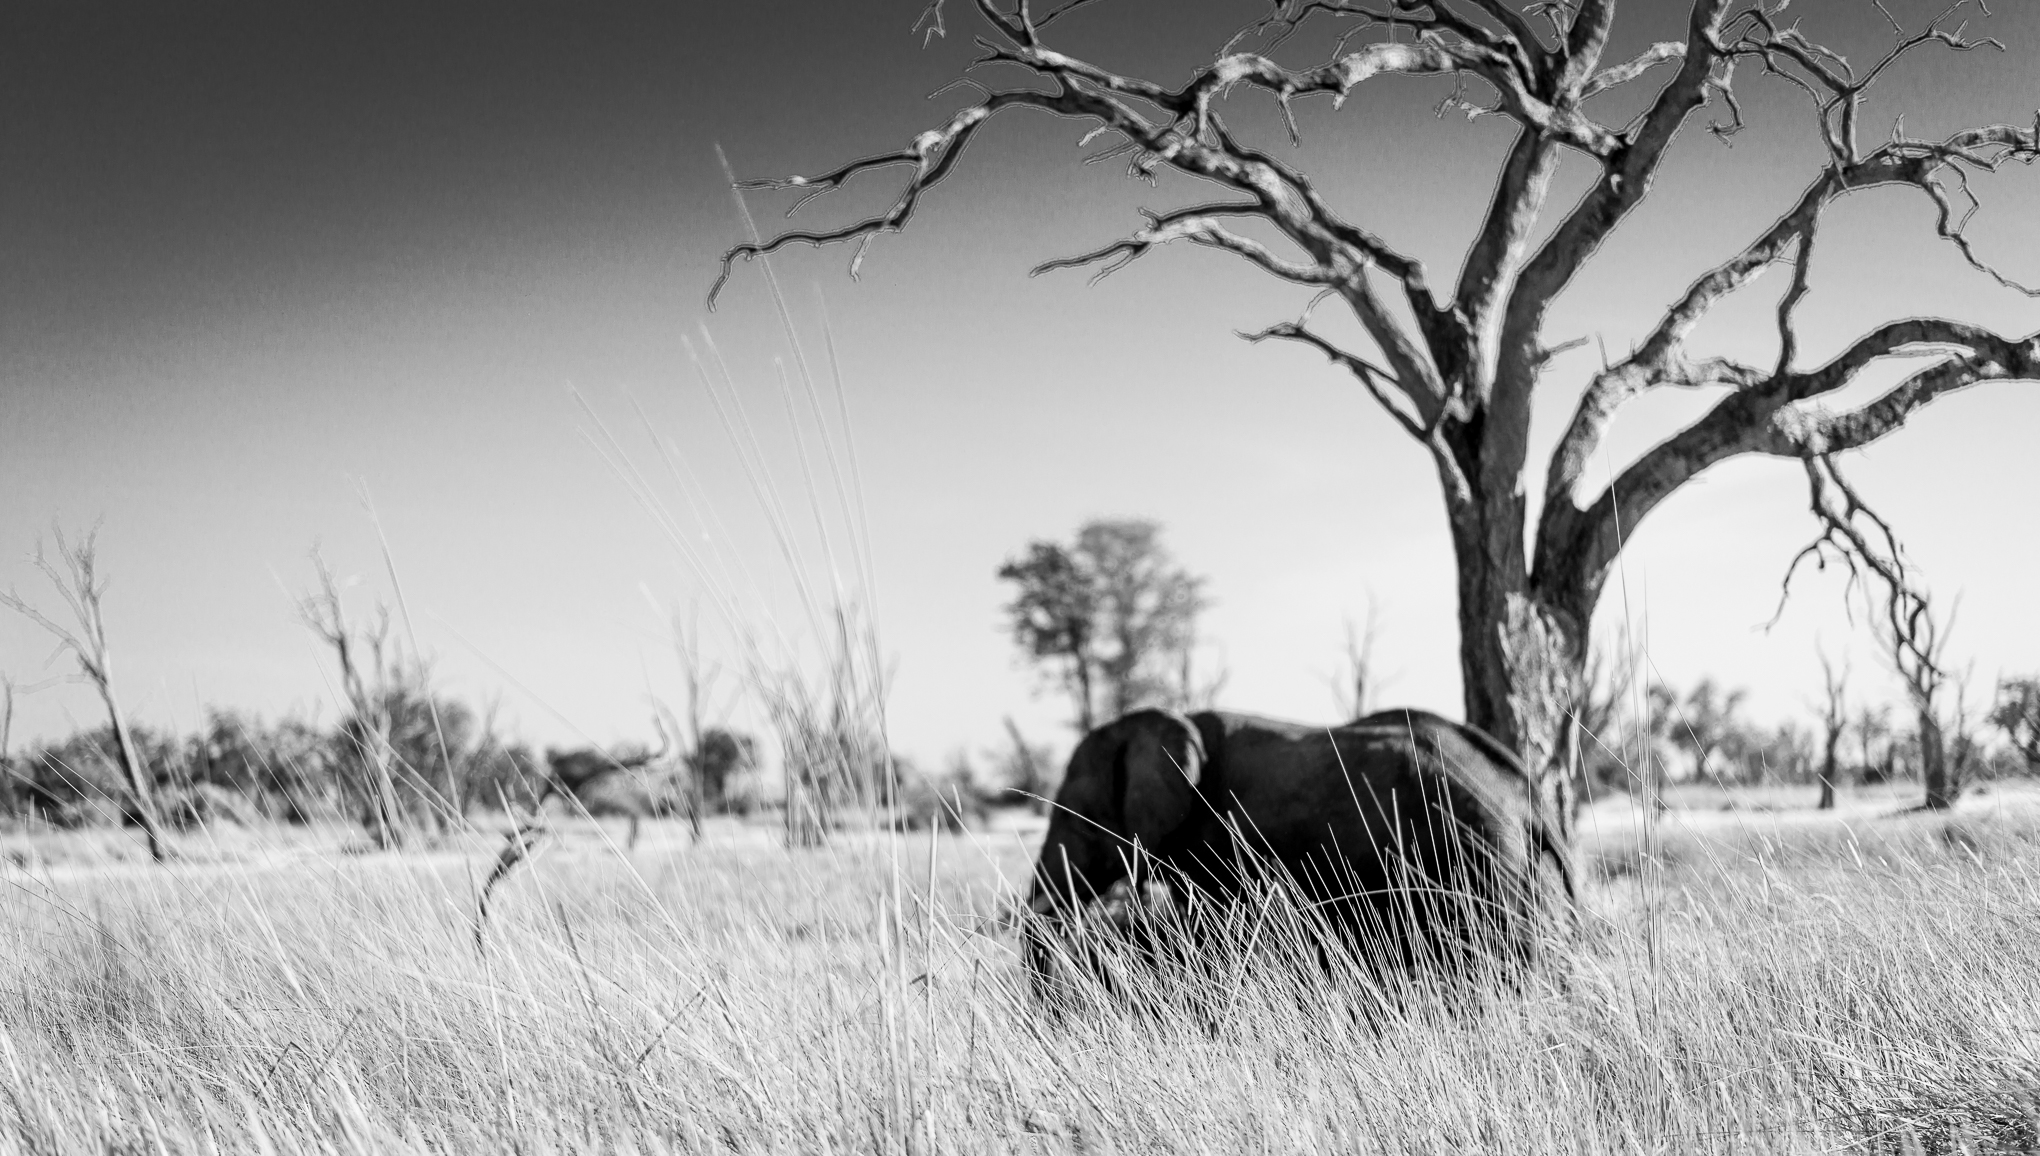 Final elephant photo on the dead pan.  This is not the elephant that had the baby the night before.